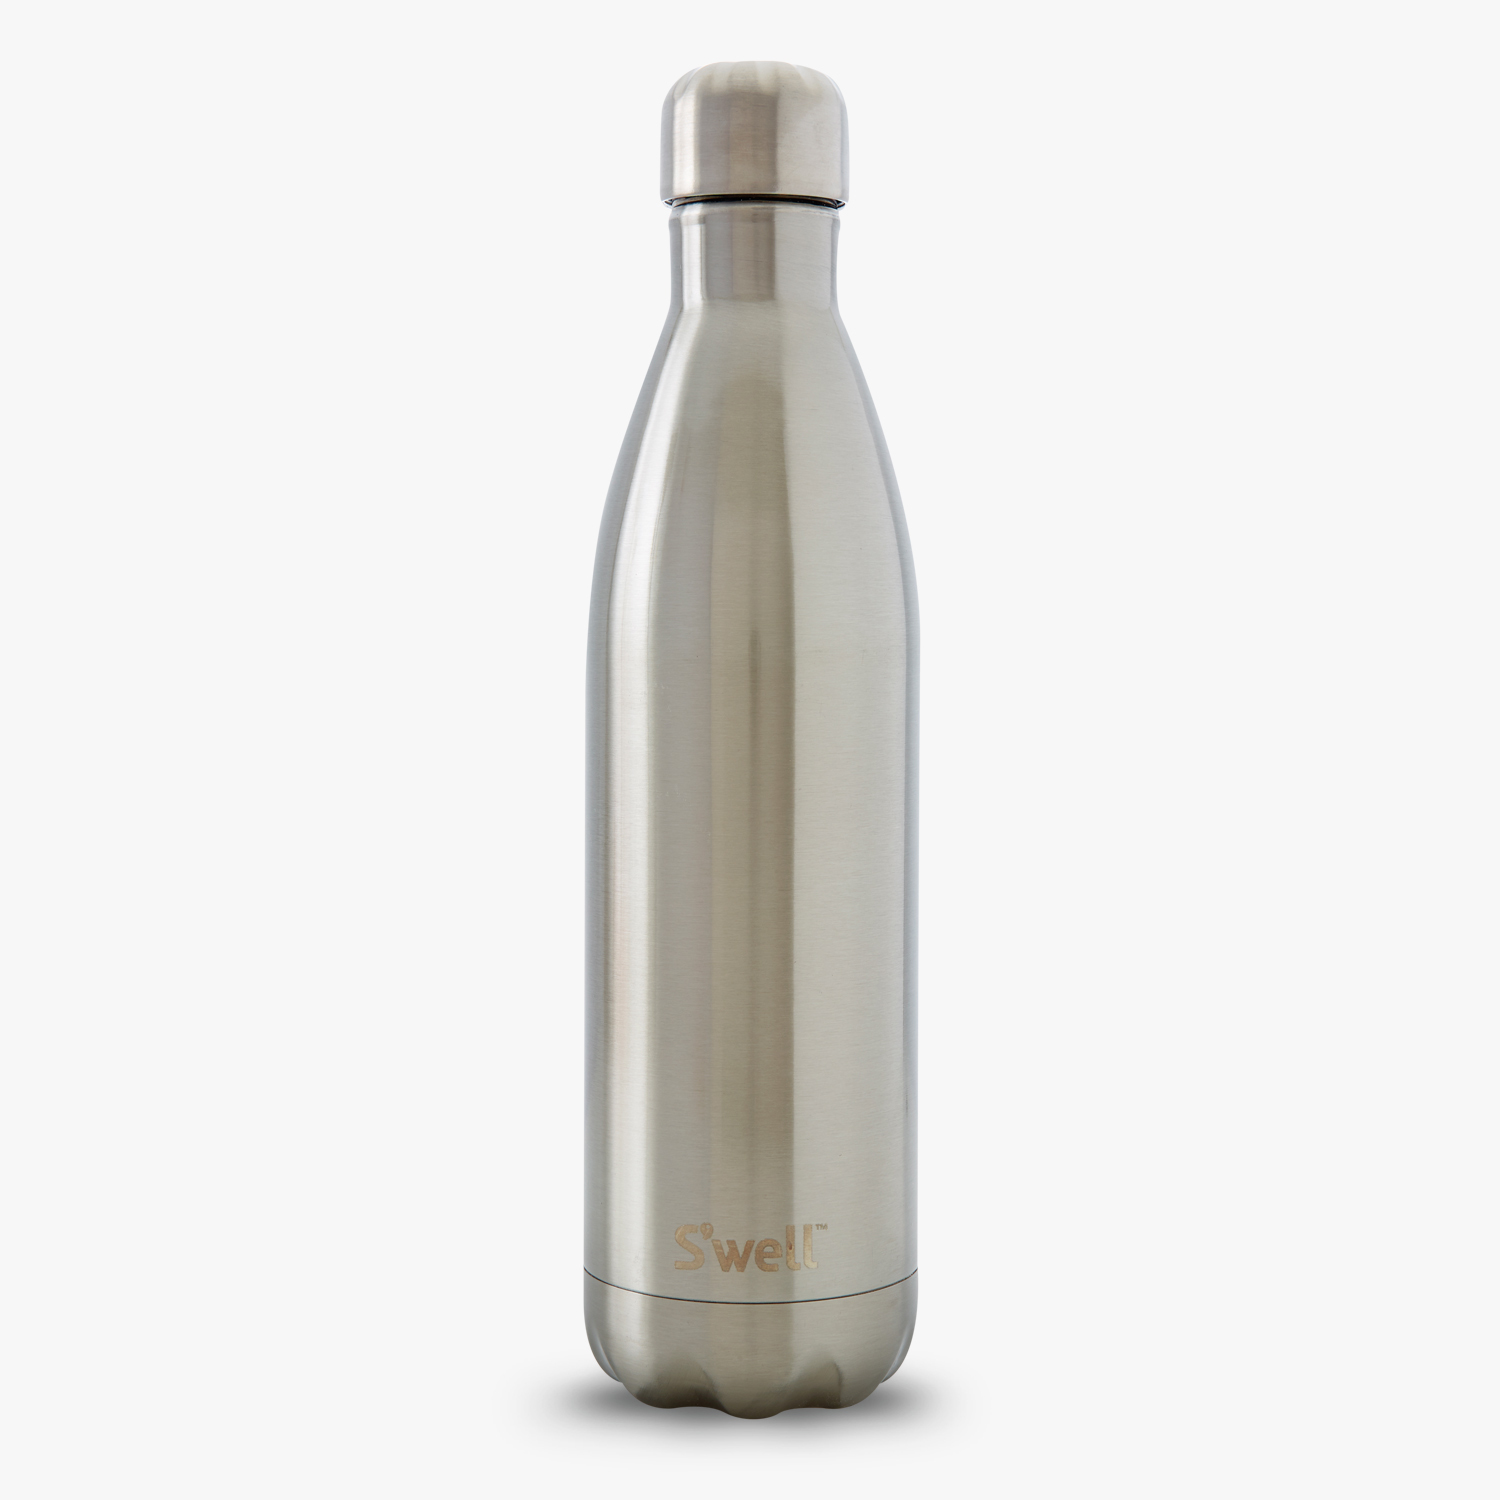 S Well Insulated Drink Bottle Stainless Steel Bottle